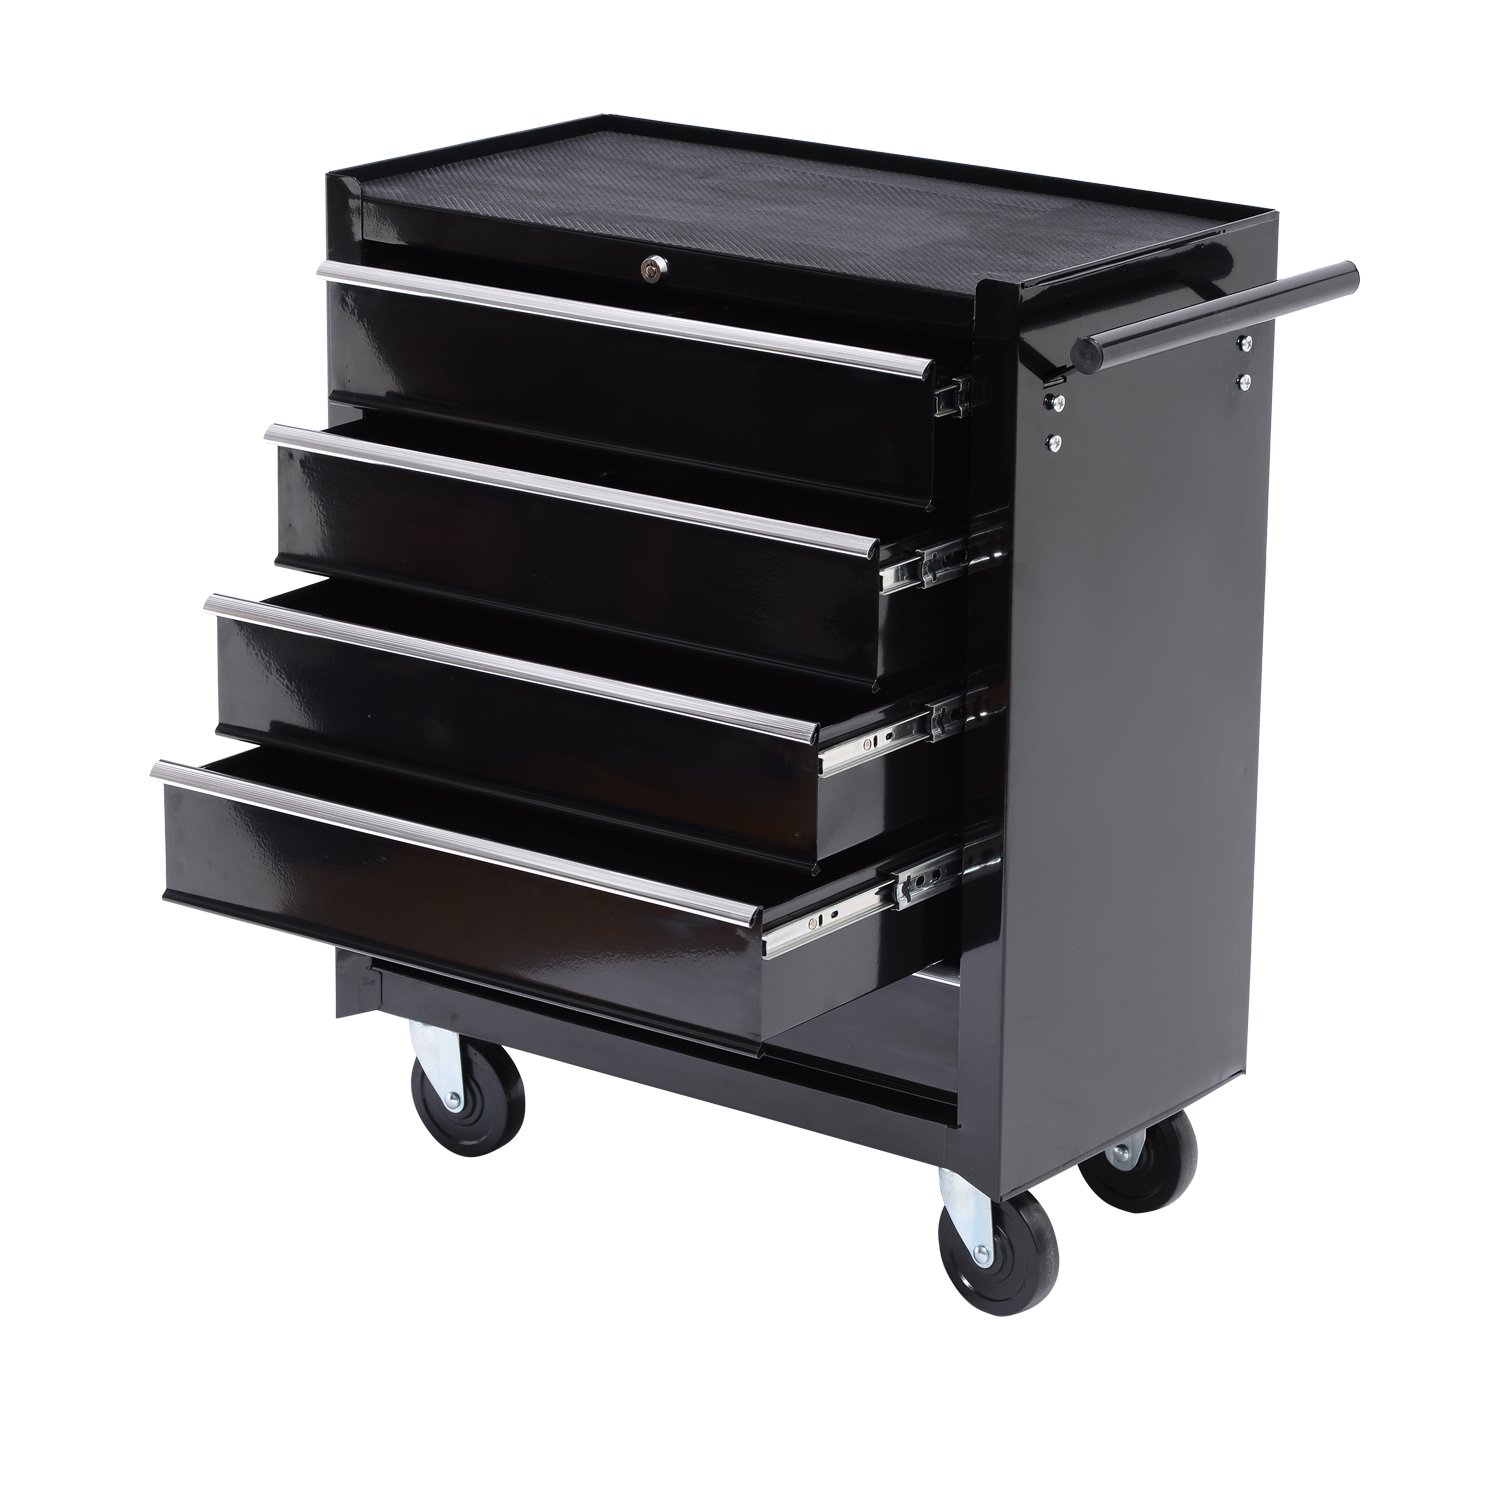 sterilite getimage shop way storage url your drawers drawer online plastic com cart biglots